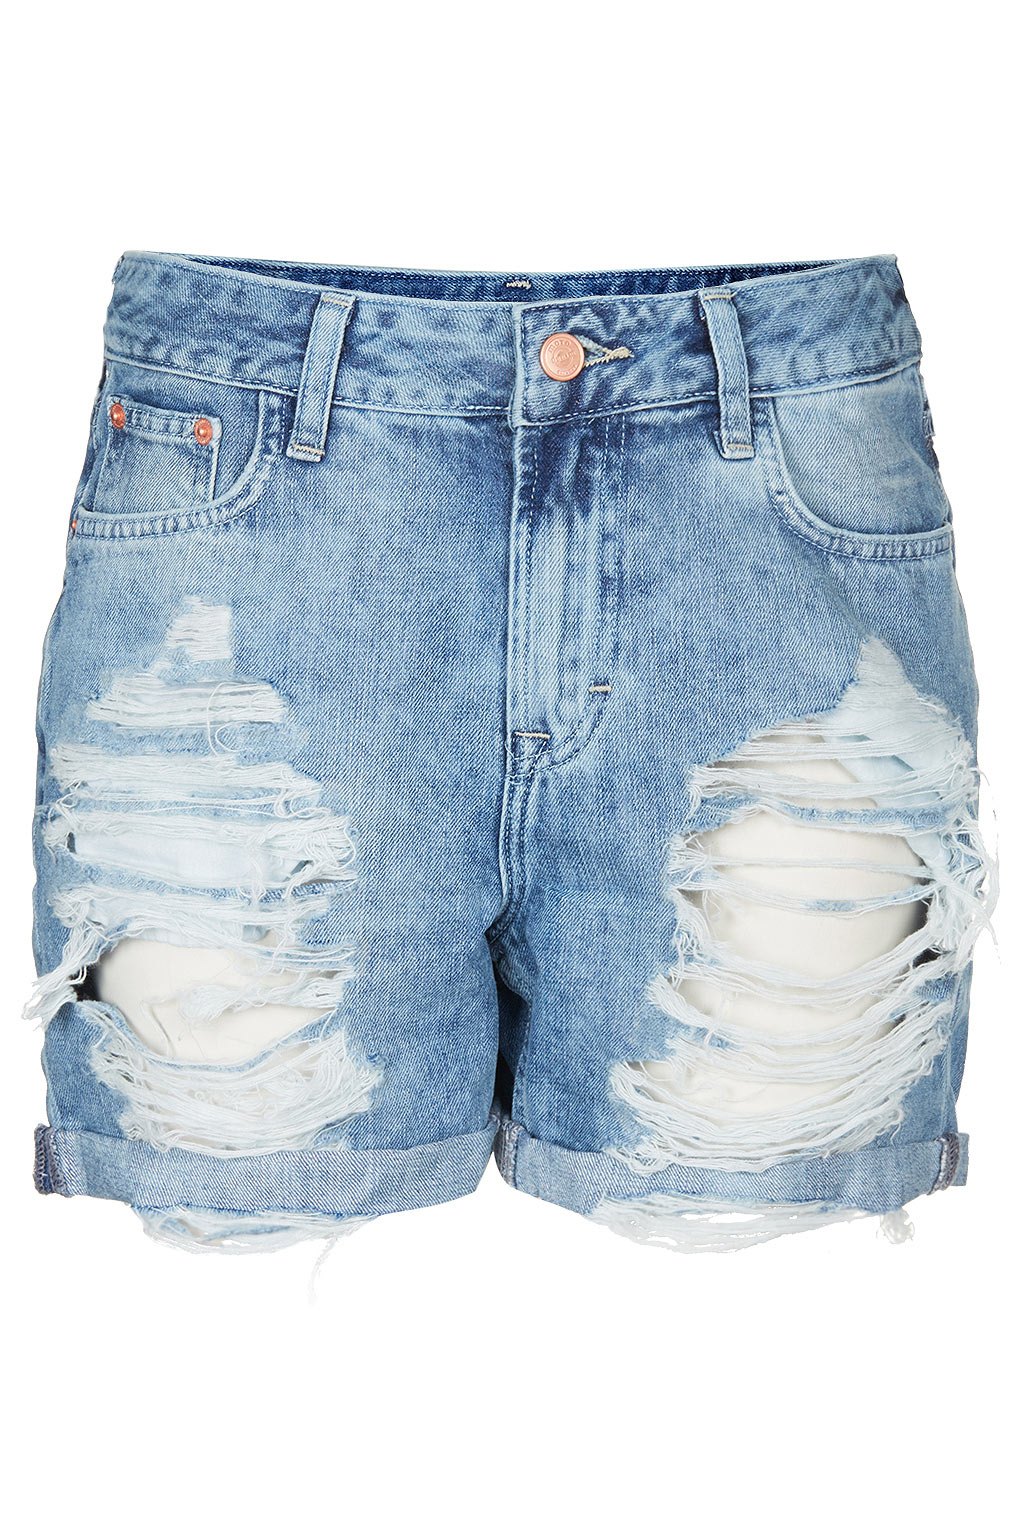 ripped jean shorts for women - Jean Yu Beauty